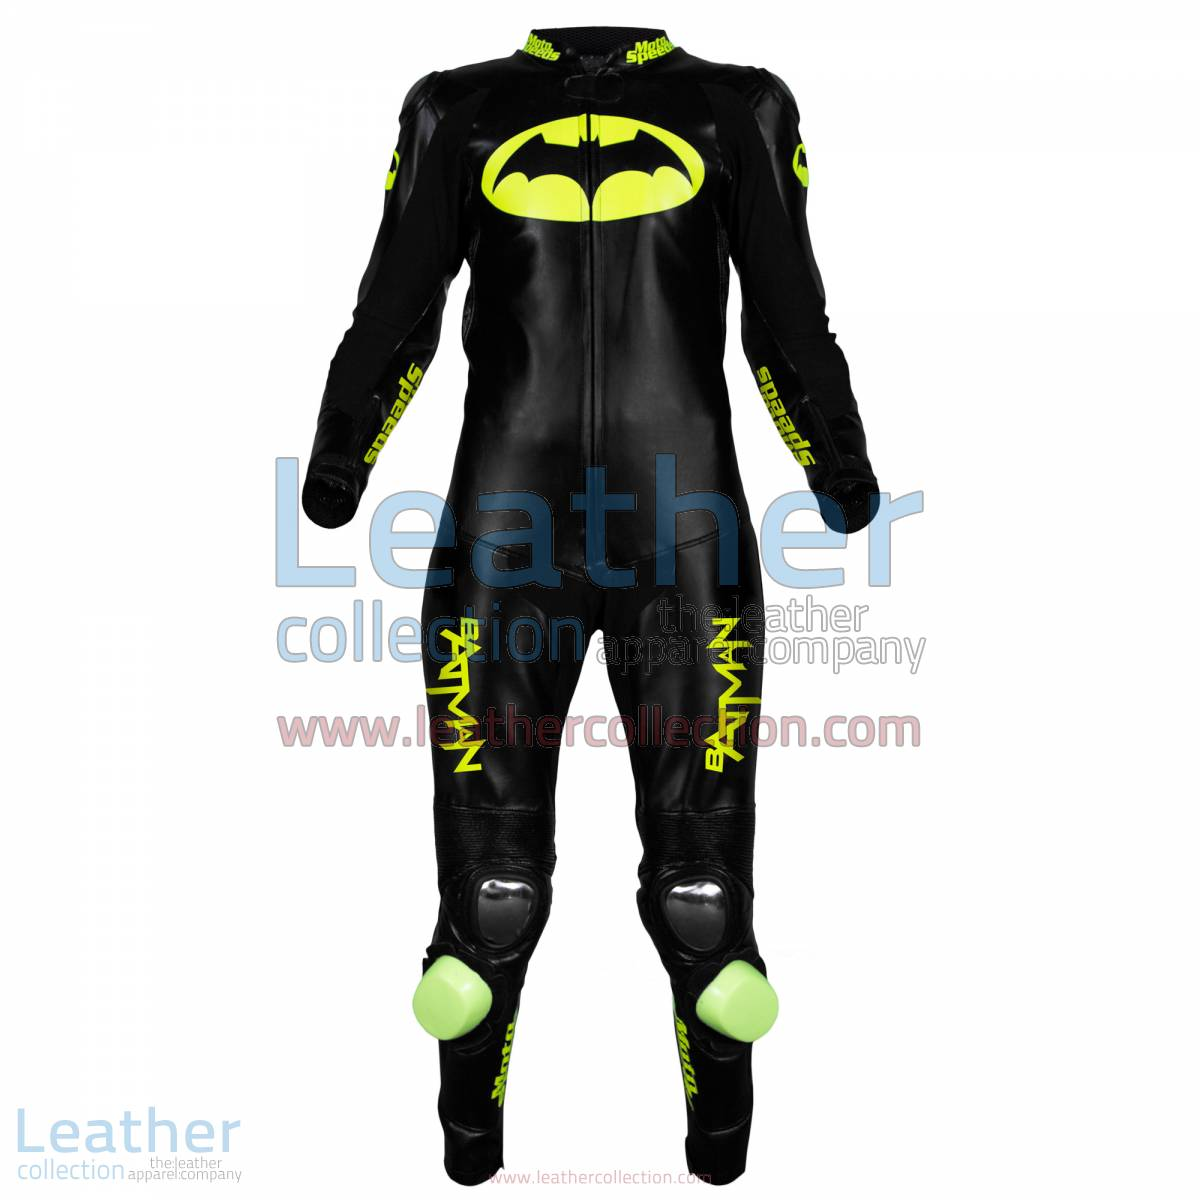 Batman Motorcycle Racing Leathers | motorcycle racing leathers